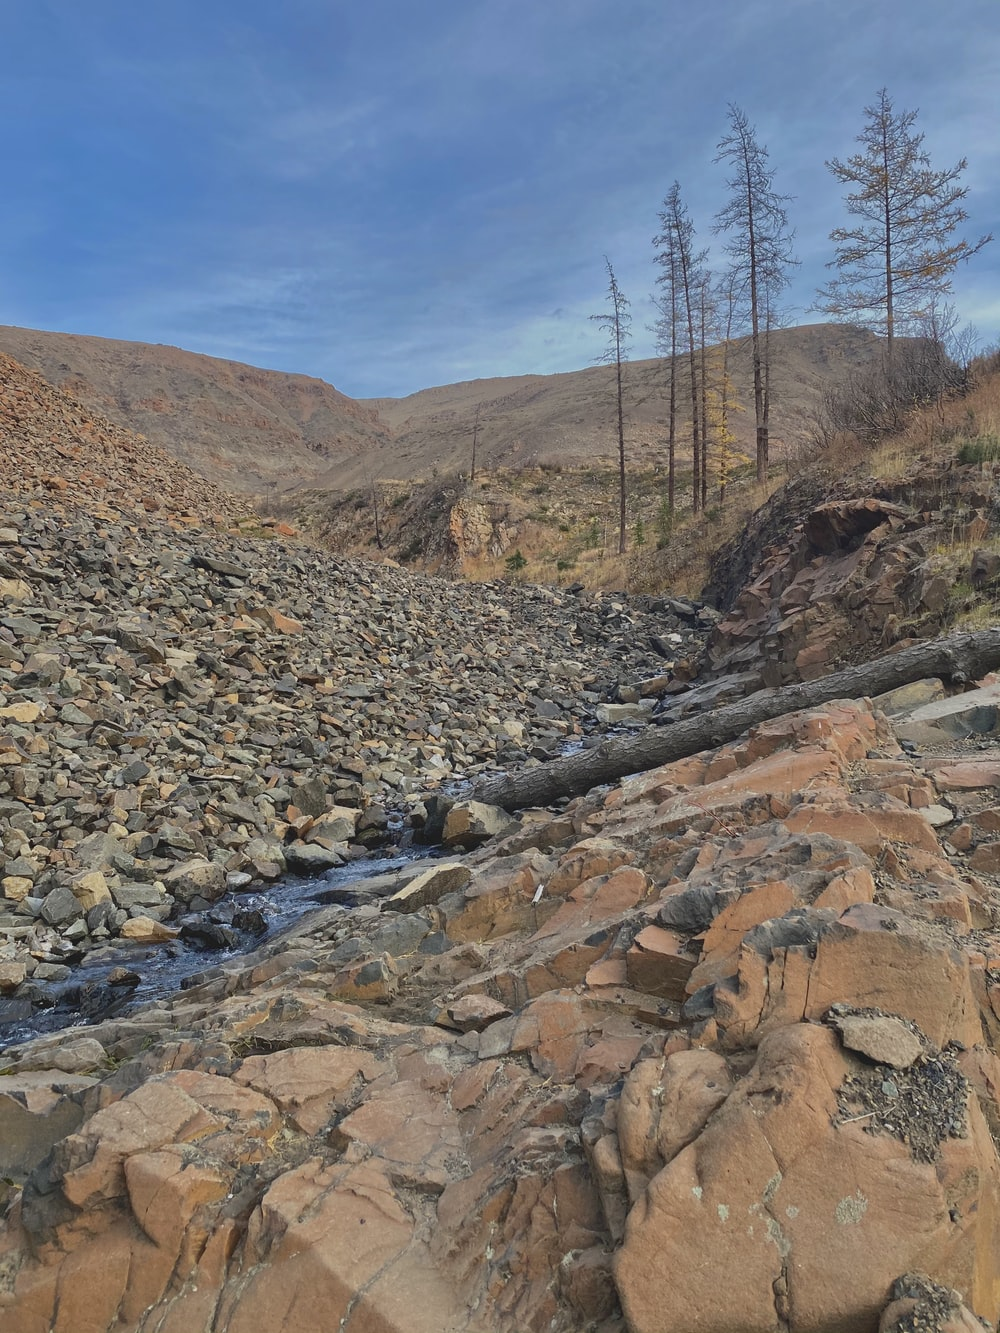 rocky river between brown mountains under blue sky during daytime